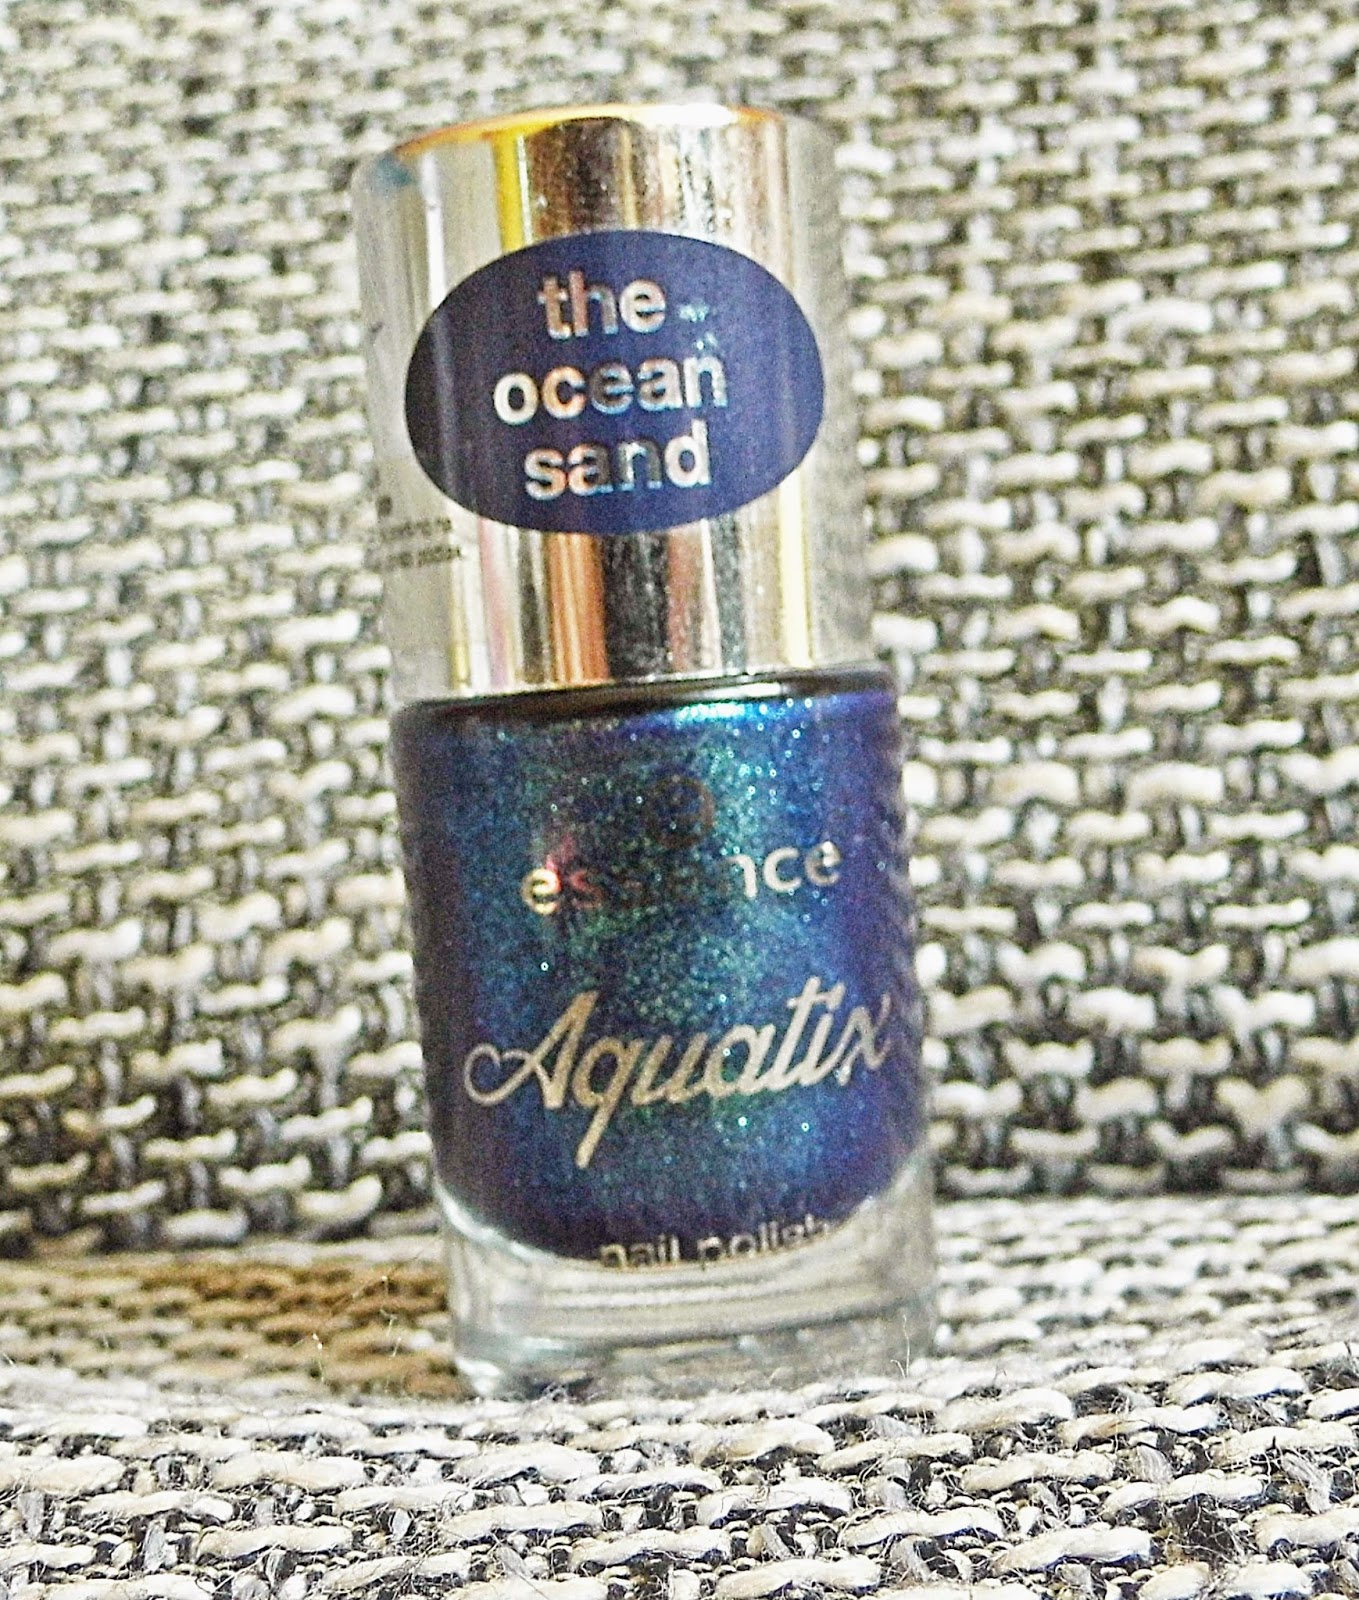 essence-aquatix-limited-edition-under-water-love-swatch-picture-bottle